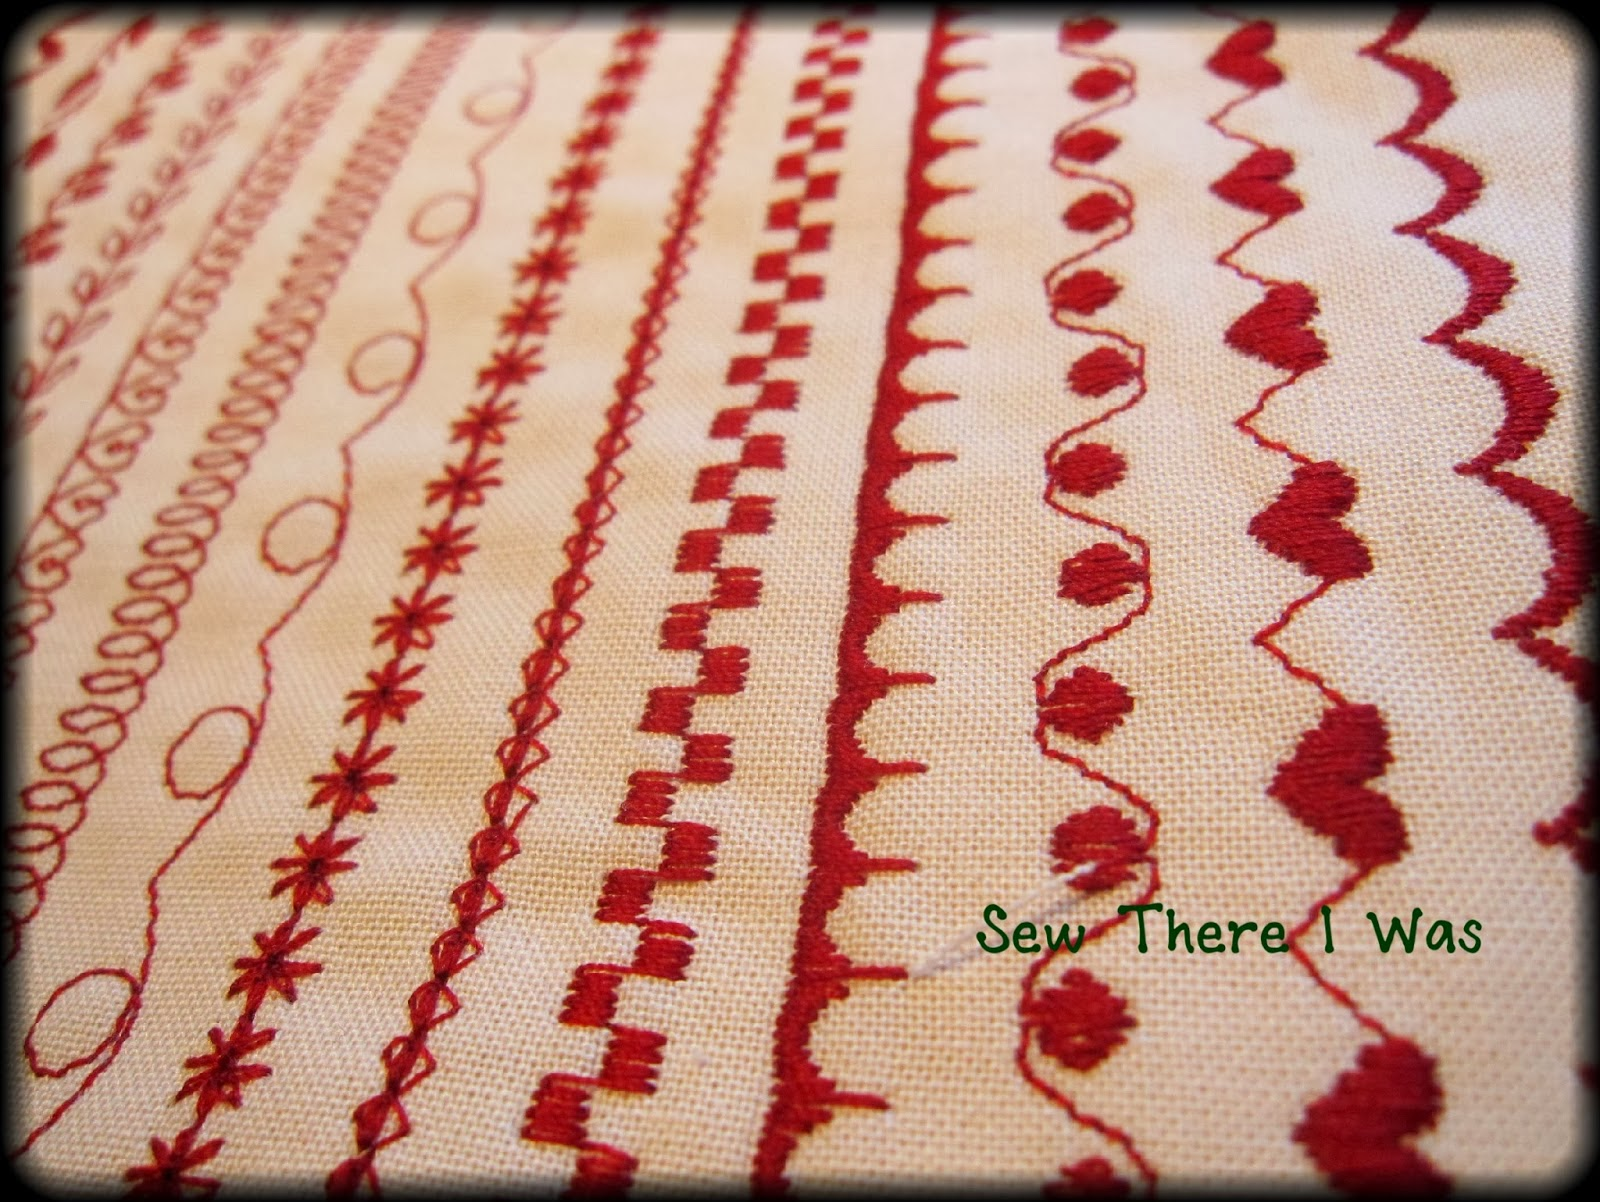 http://backtosew.blogspot.com/2014/02/how-to-make-stitch-library.html